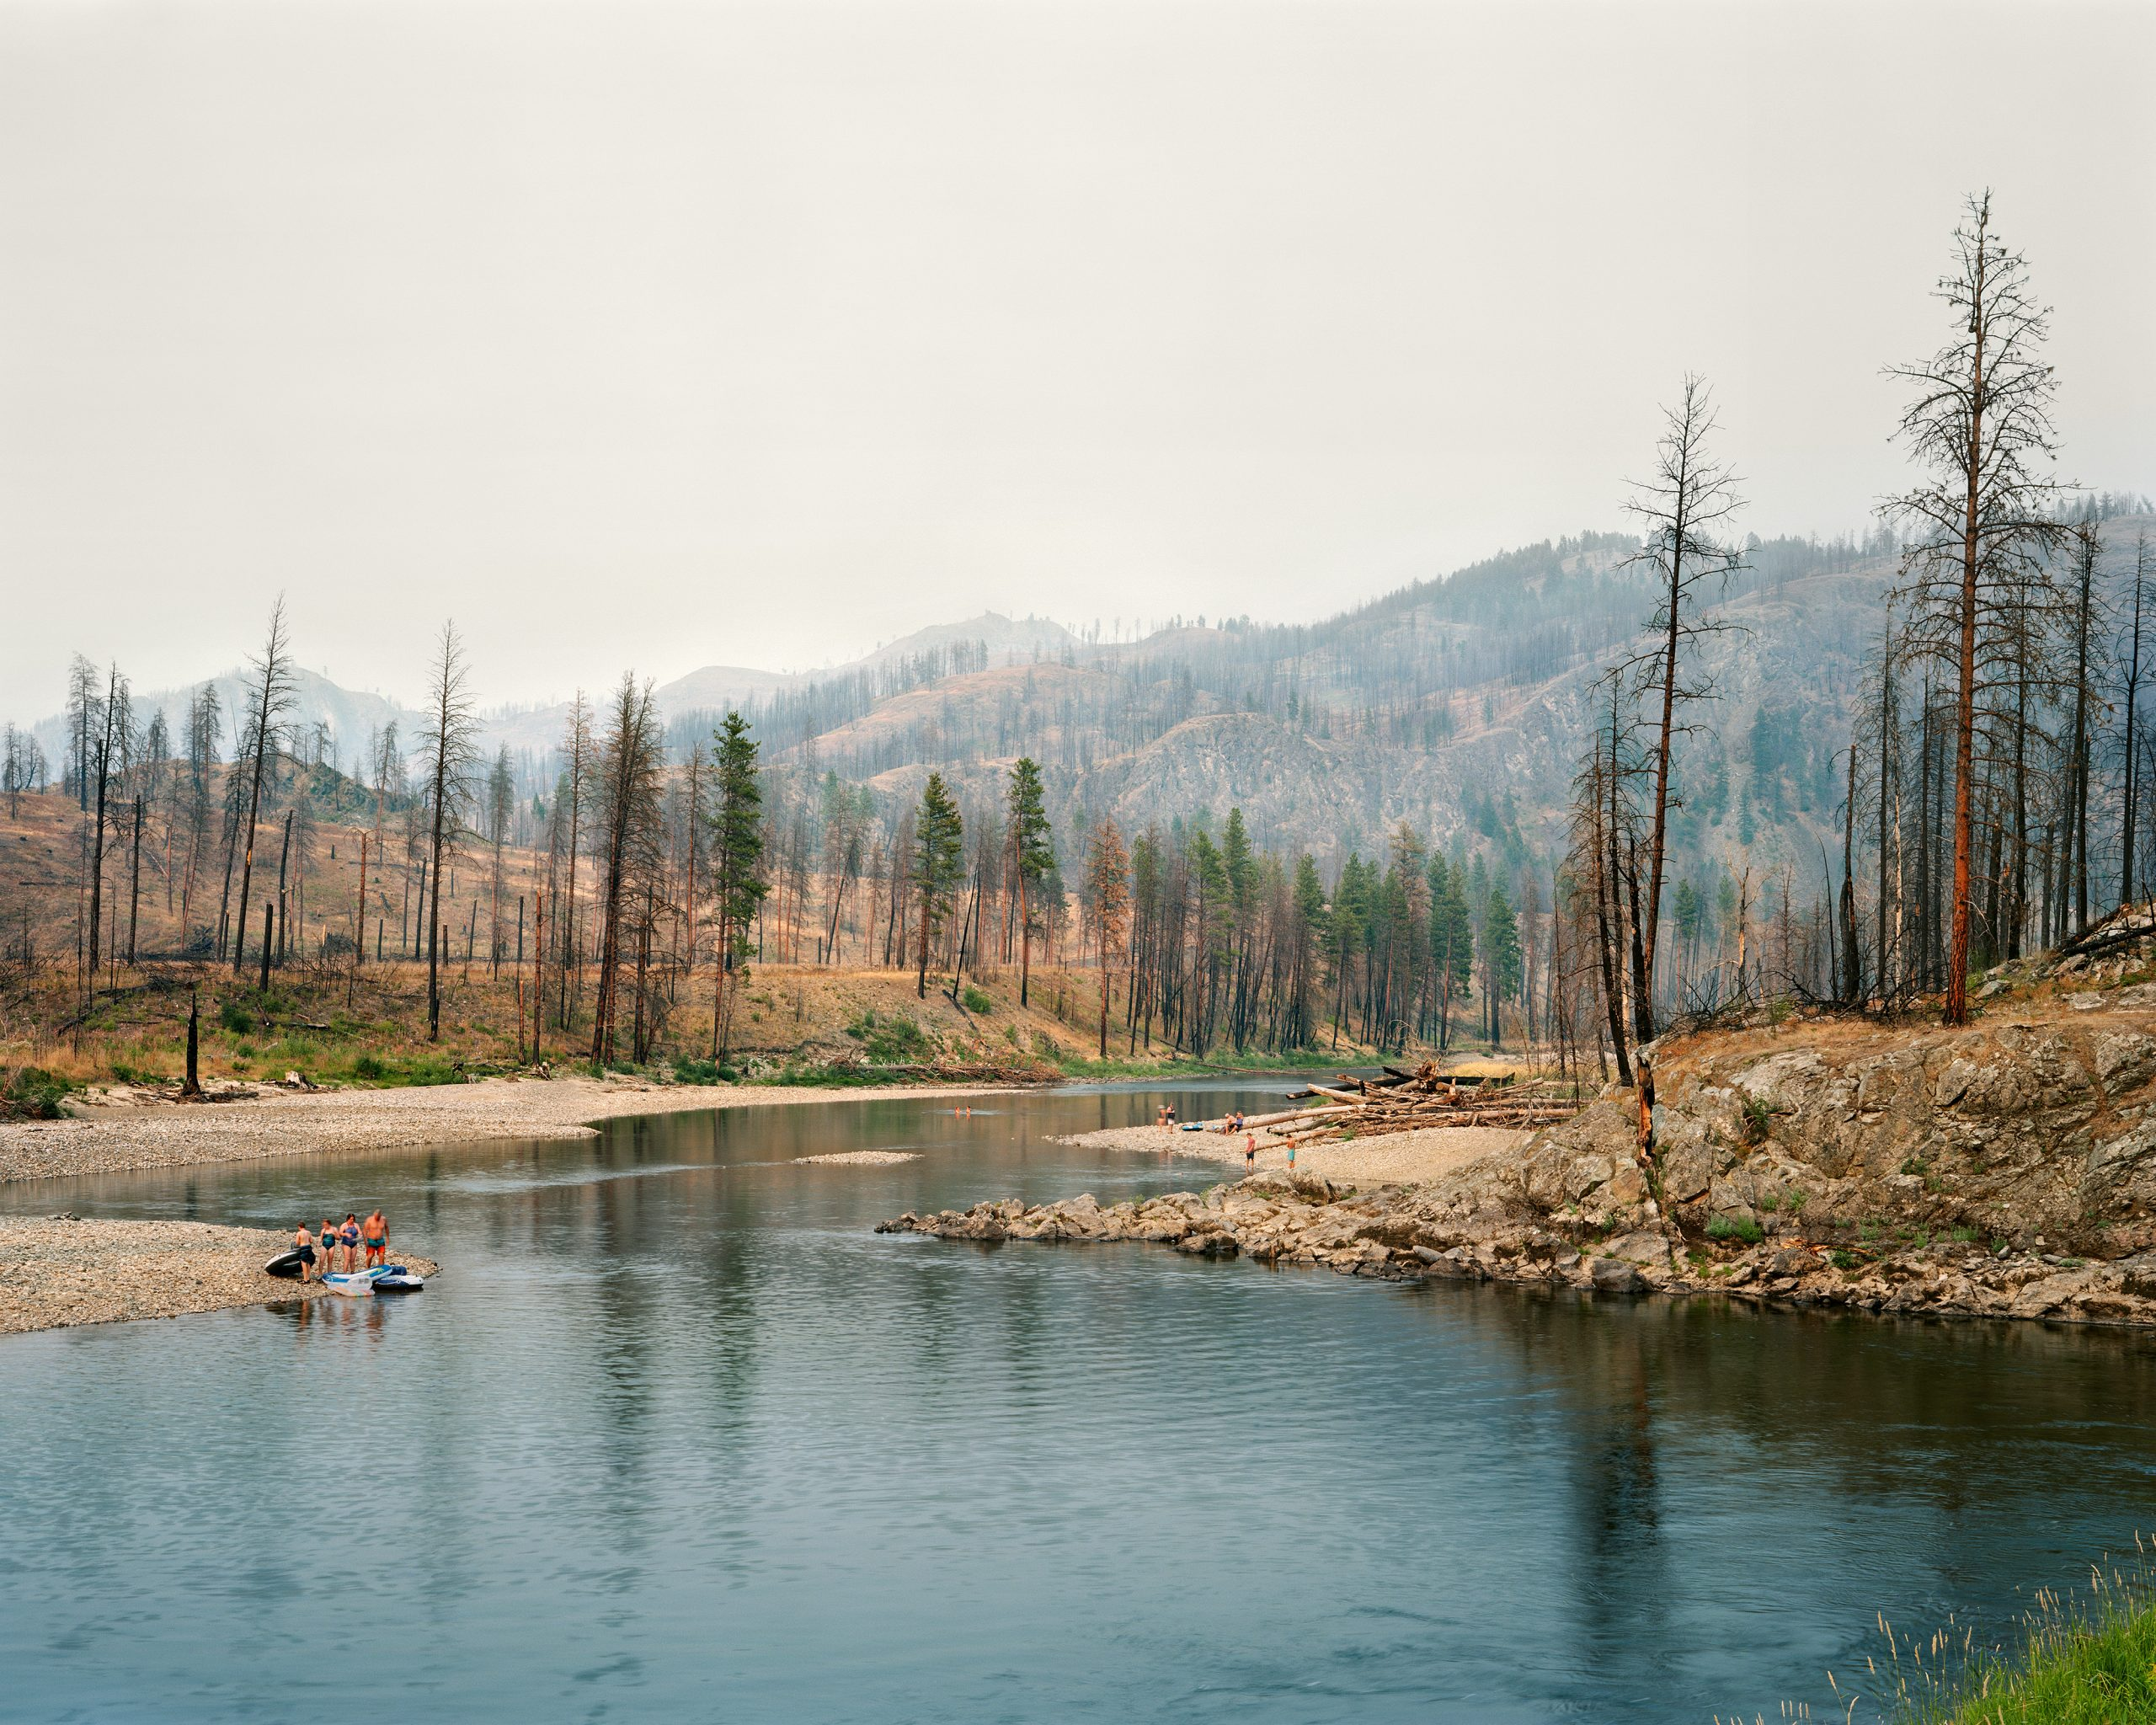 andreas-rutkauskas-kettle-river-recreation-area-the-scales-project